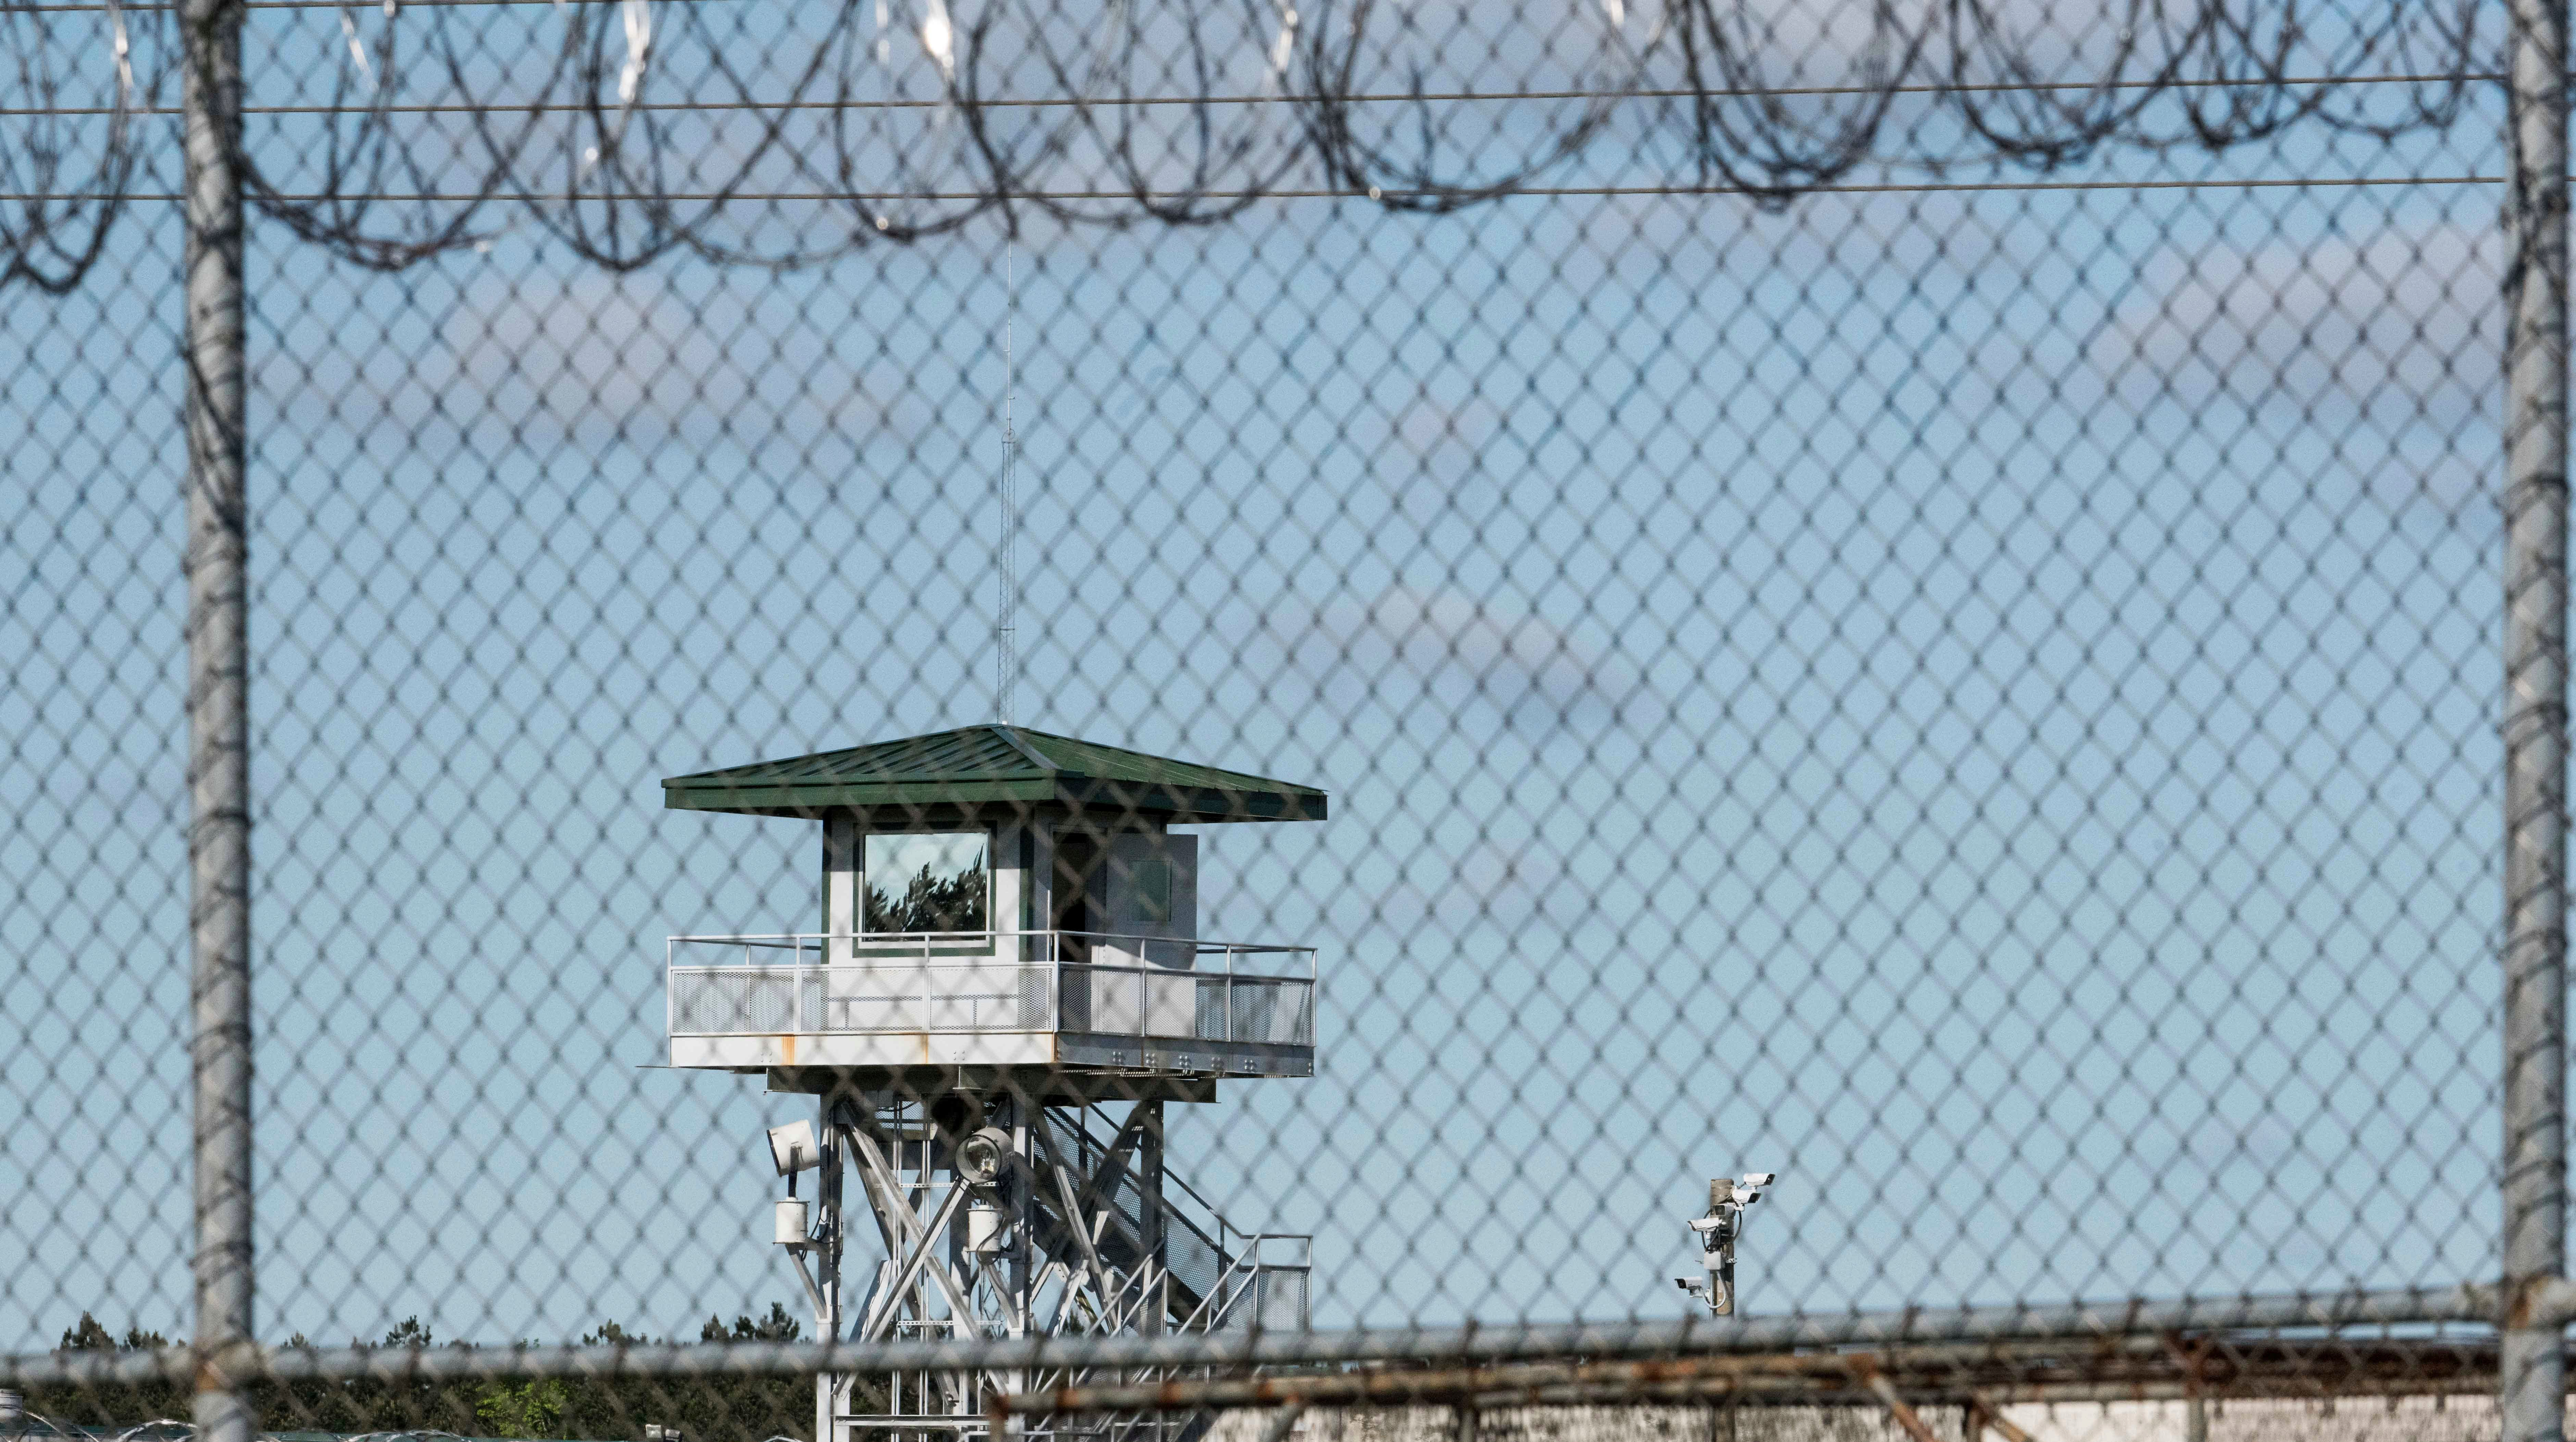 A guard tower stands above the Lee Correctional Institution, a maximum security prison in Bishopville, South Carolina.